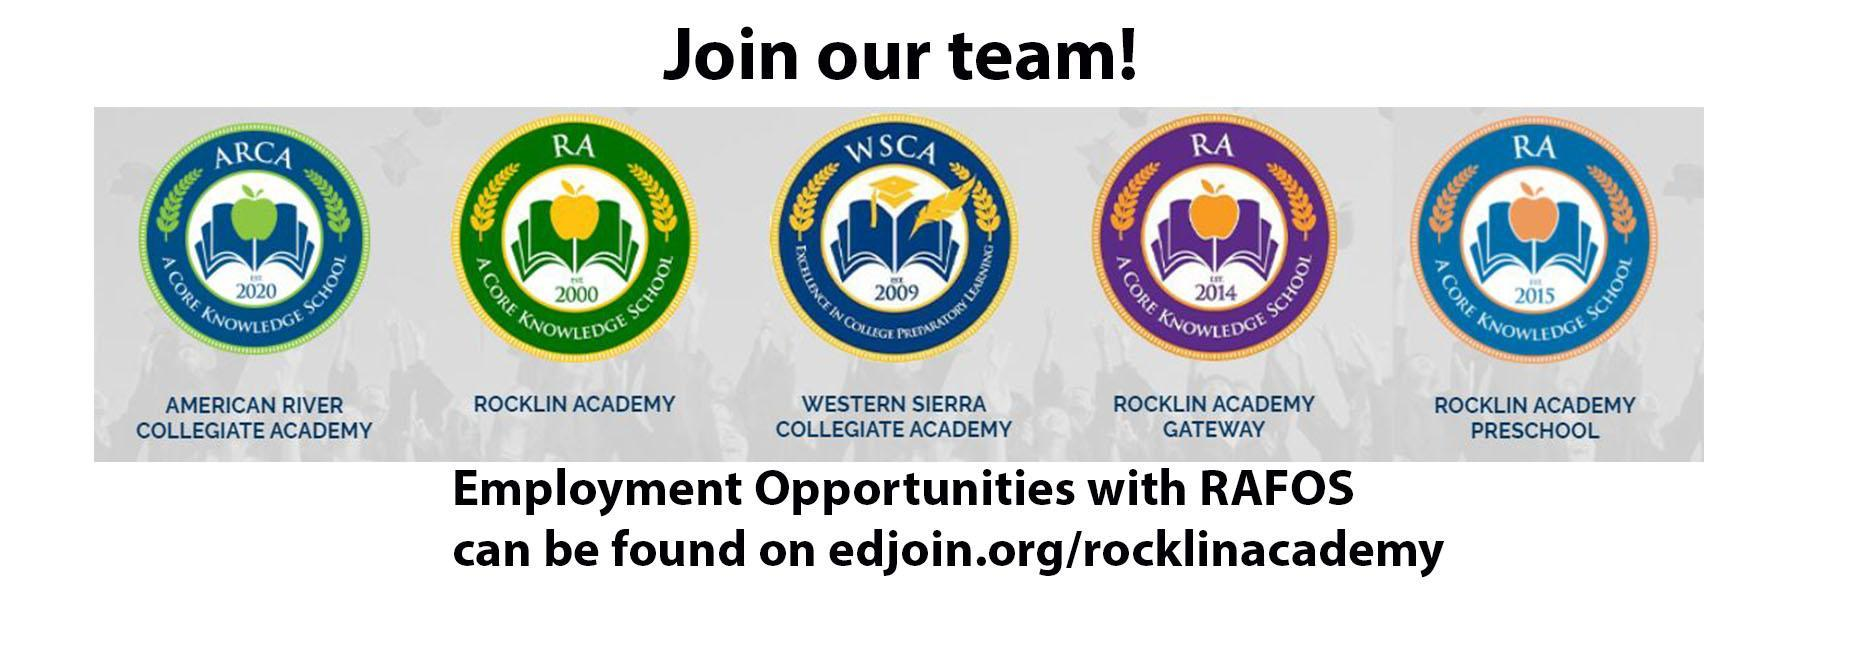 join our team at edjoin.com/rocklinacademy